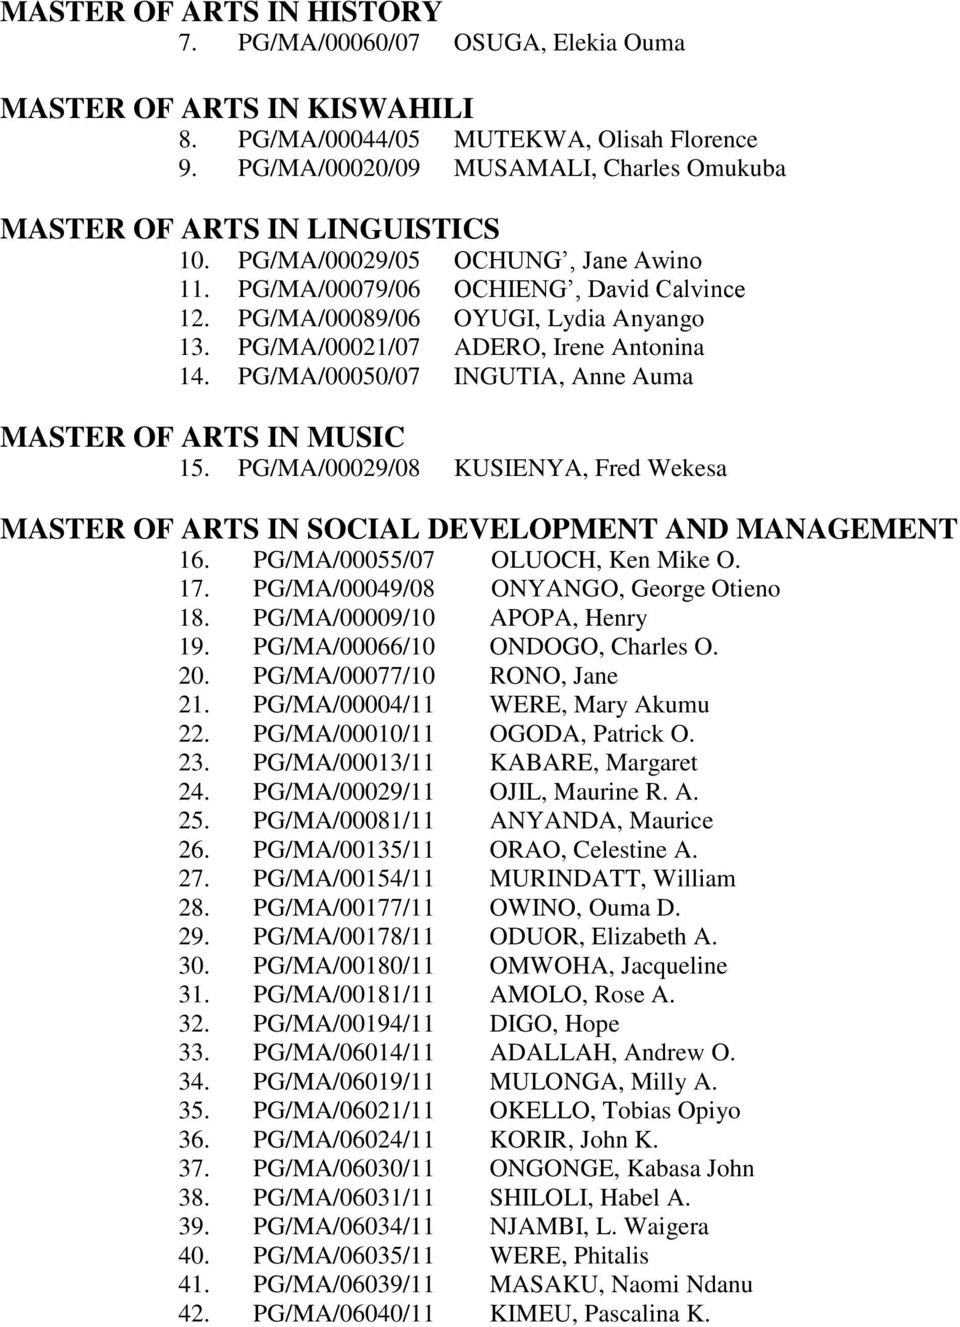 PG/MA/00021/07 ADERO, Irene Antonina 14. PG/MA/00050/07 INGUTIA, Anne Auma MASTER OF ARTS IN MUSIC 15. PG/MA/00029/08 KUSIENYA, Fred Wekesa MASTER OF ARTS IN SOCIAL DEVELOPMENT AND MANAGEMENT 16.